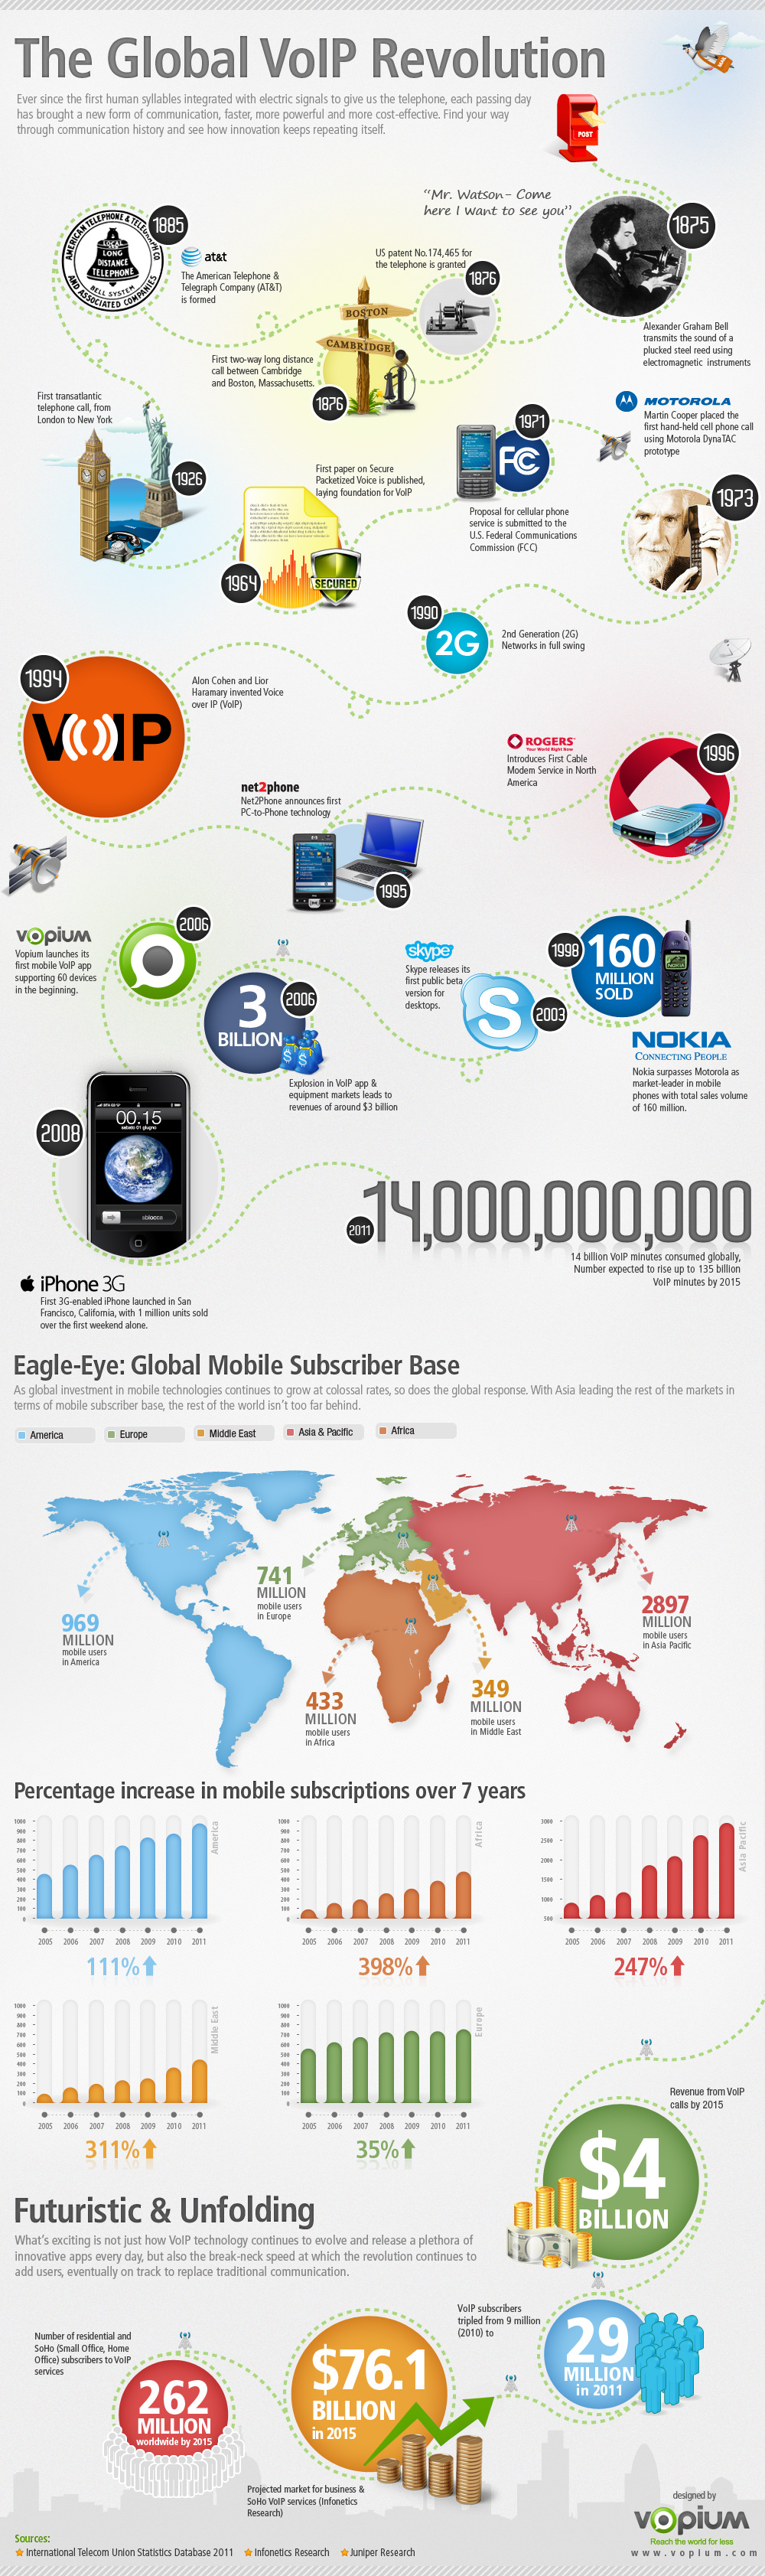 The Global VoIP Revolution